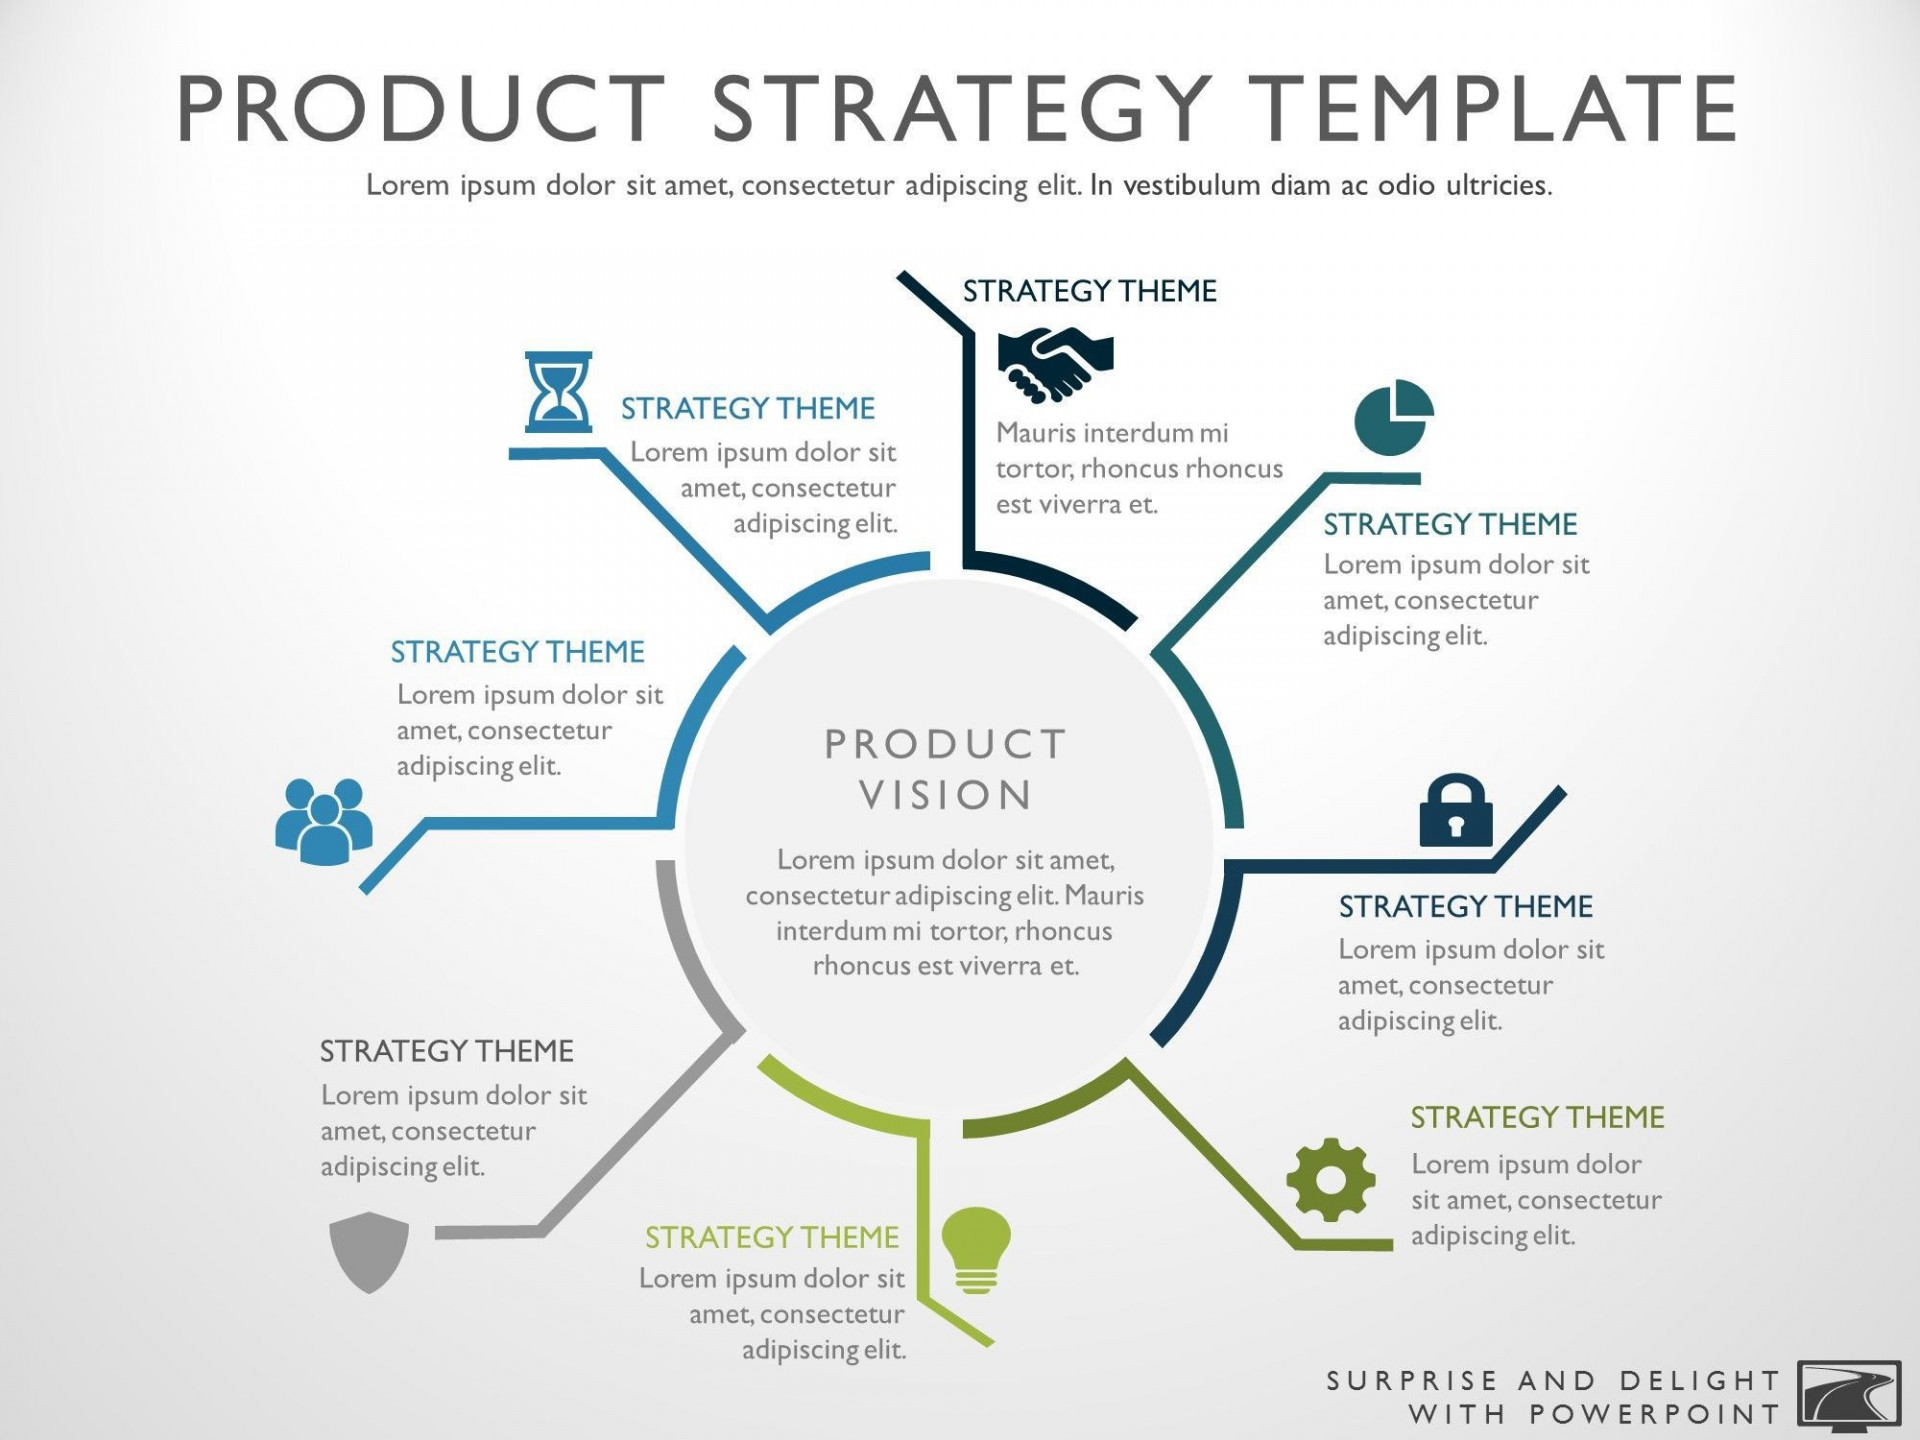 001 Archaicawful Free Product Launch Plan Template Ppt Image 1920